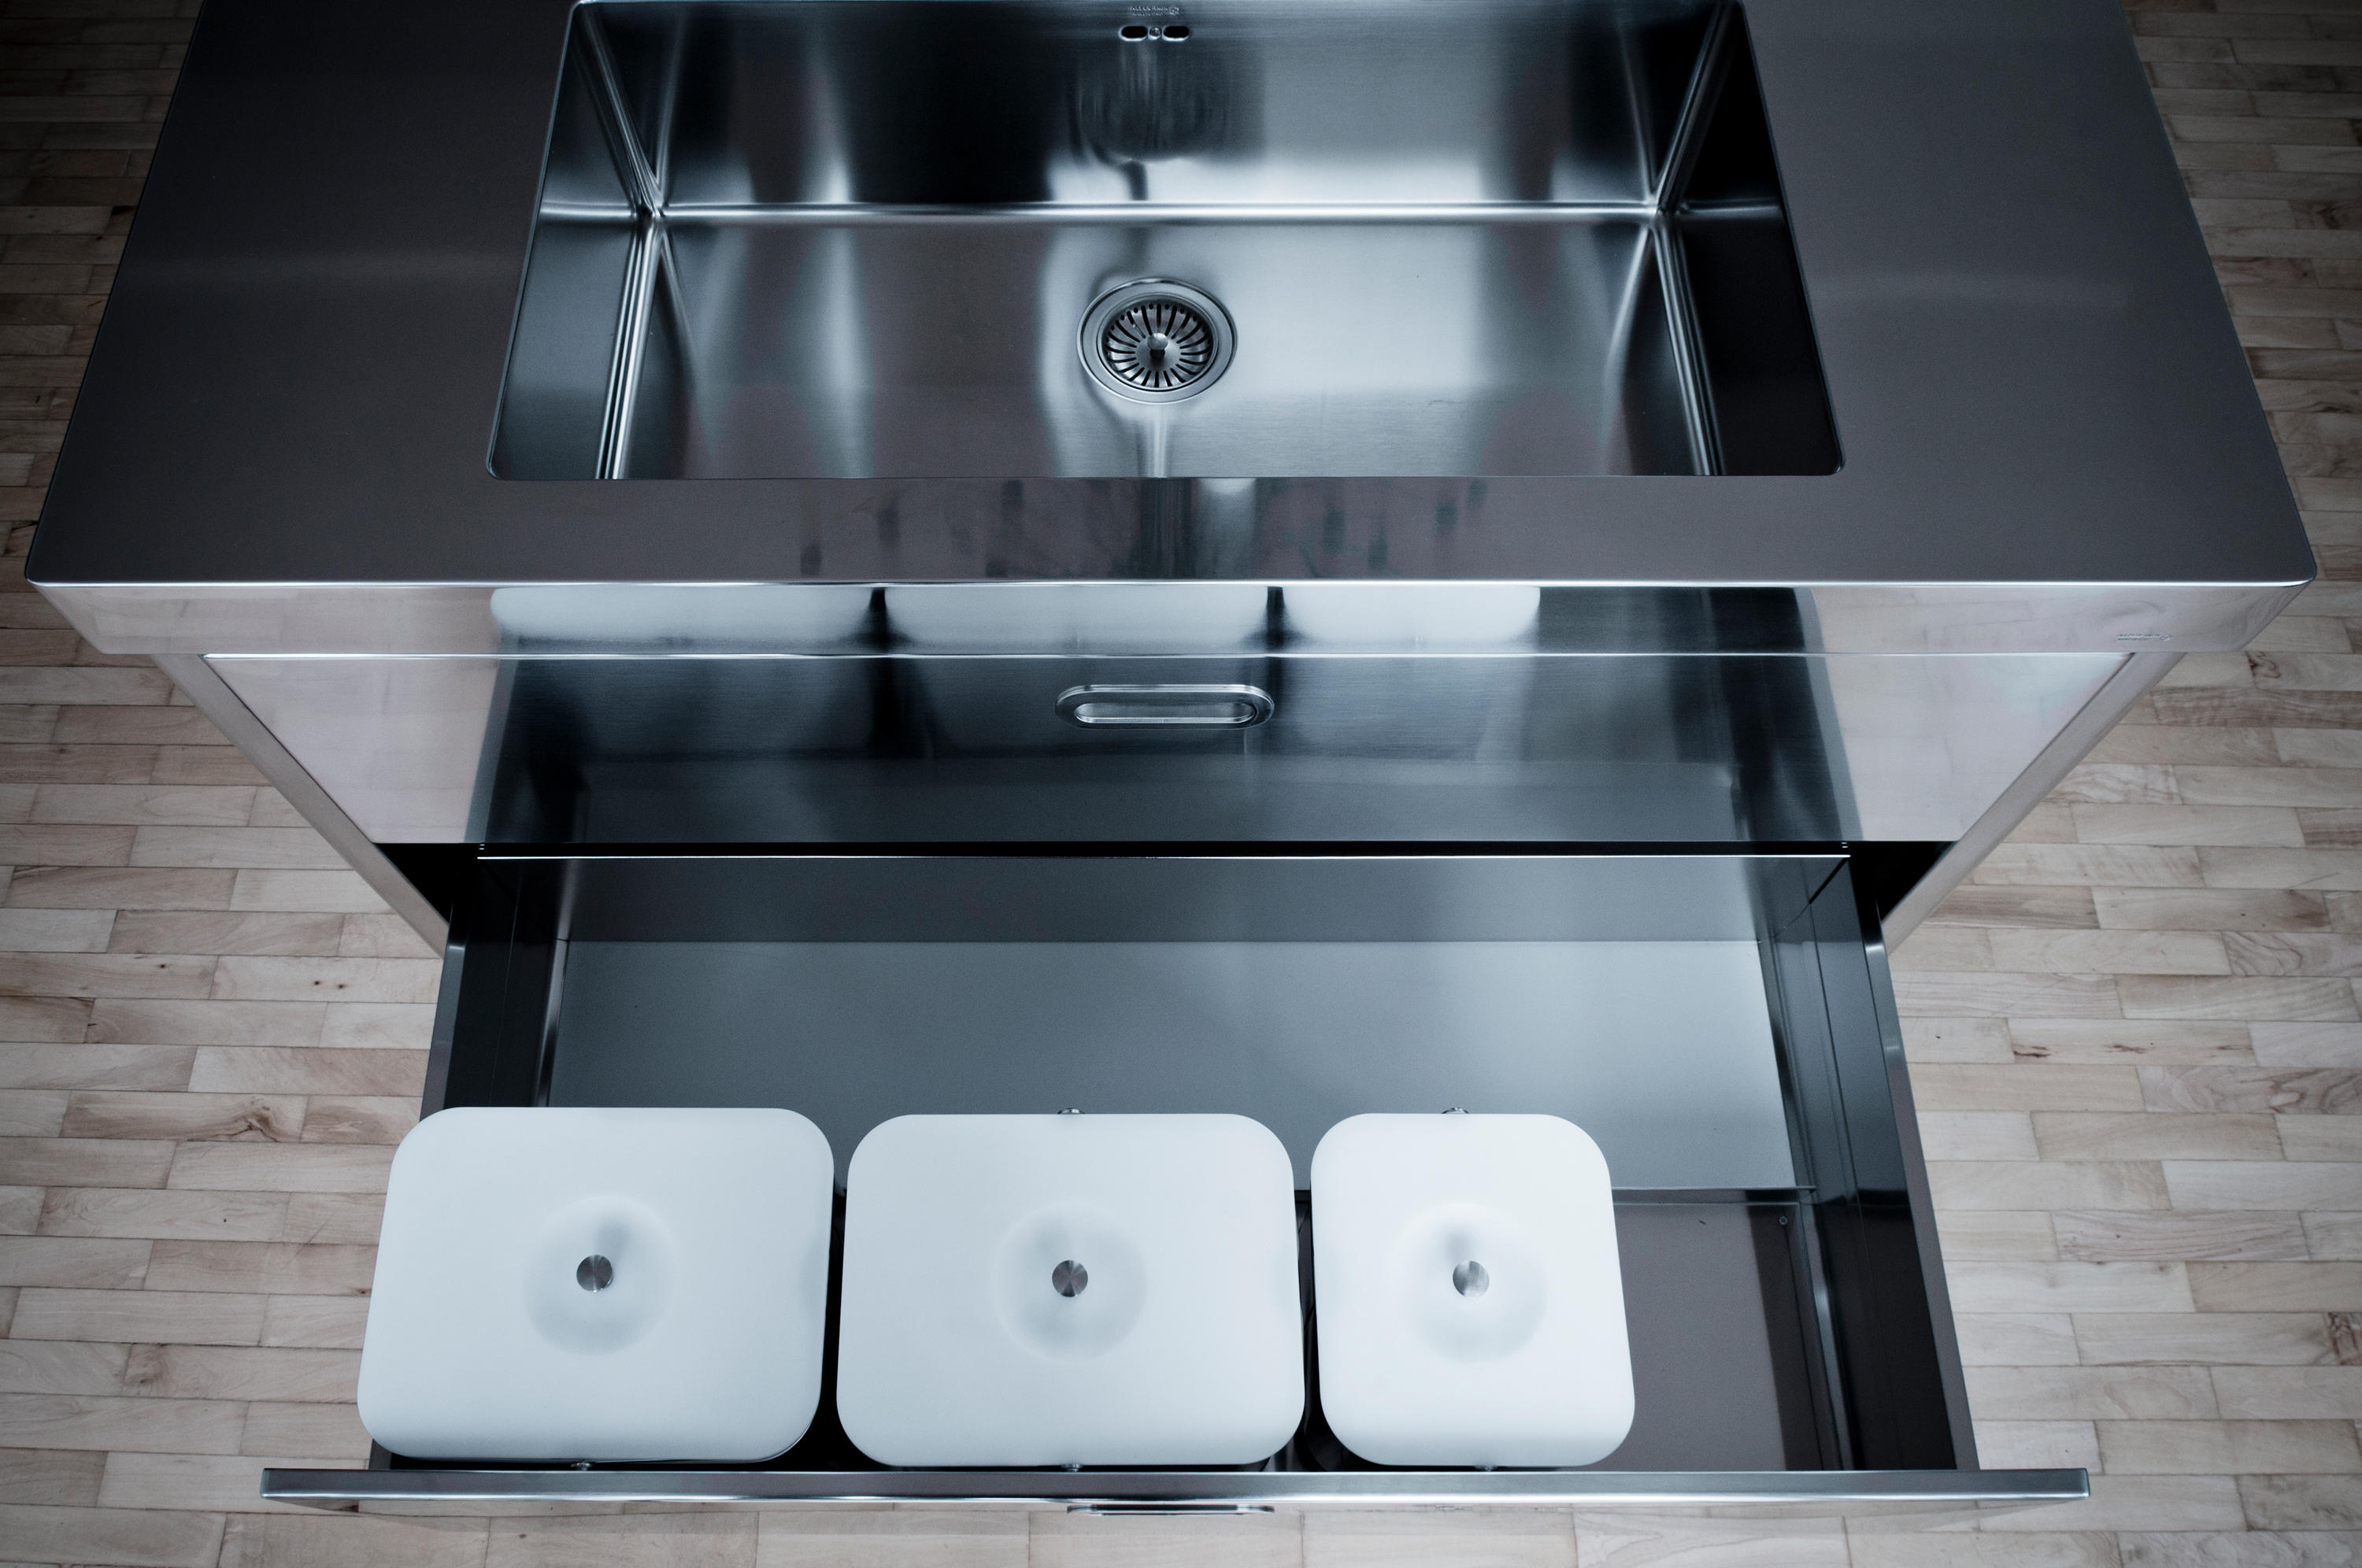 160 kitchens modular kitchens from alpes inox architonic - Blocco cucina 160 cm ...